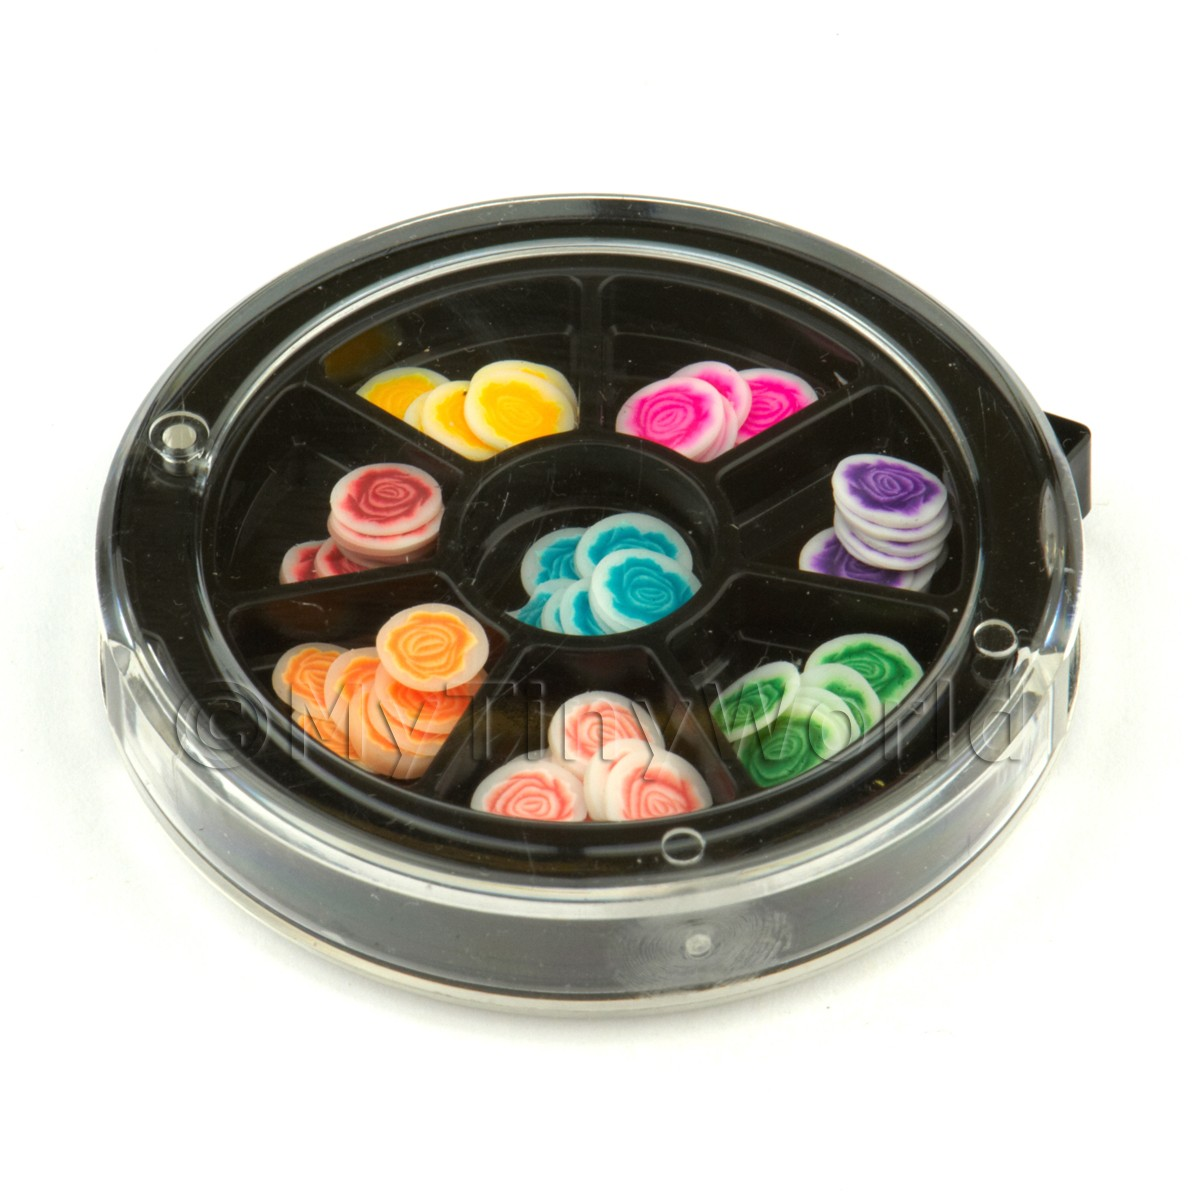 80 Assorted Nail Art Rose Slices In a Wheel Set 1